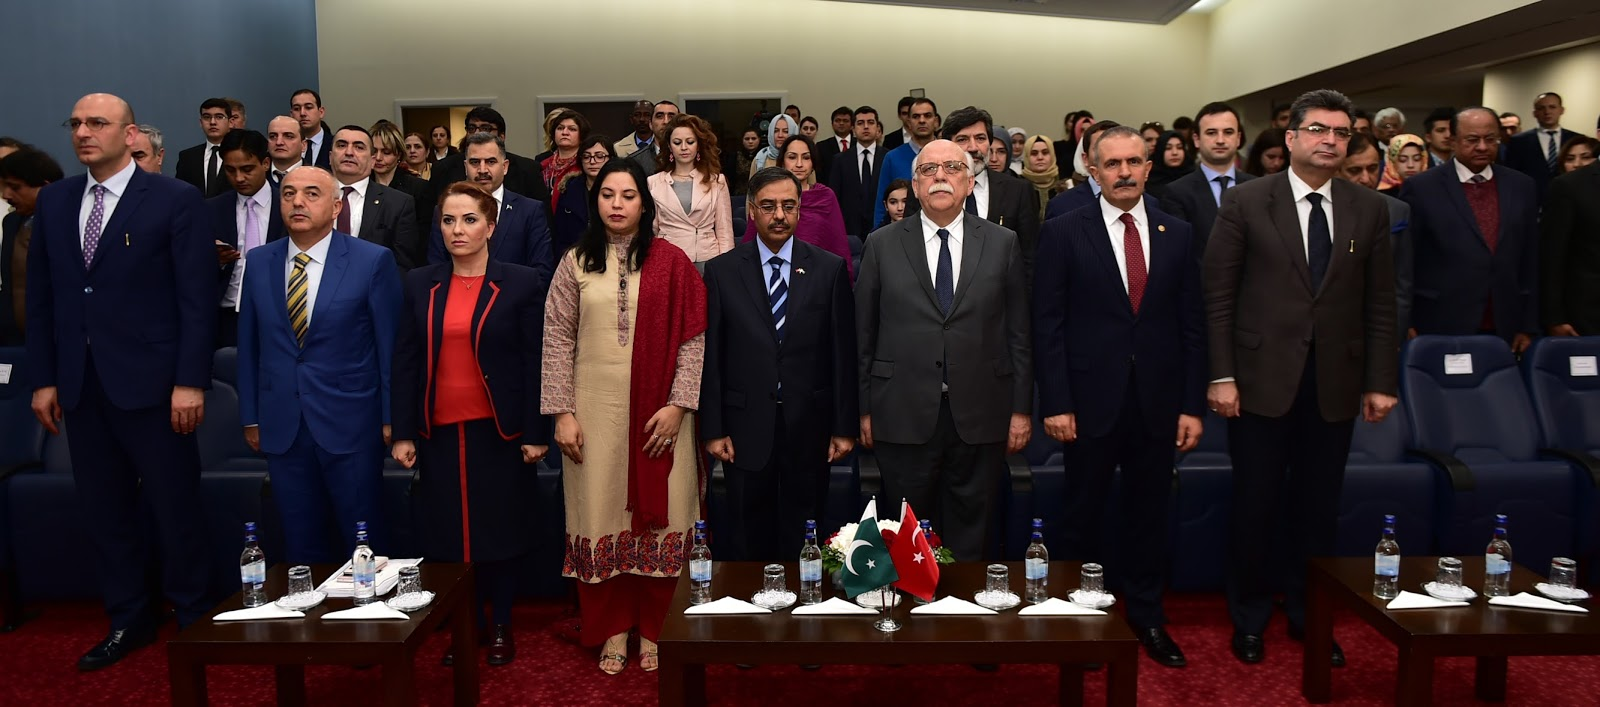 pakistan and turkey relationship essay Coups in turkey, this dissertation brings in military-to-military relations in   interviewees in both pakistan and turkey, who spared from their time to speak   presented in this essay that shows türkeş being one of the best connected  among.